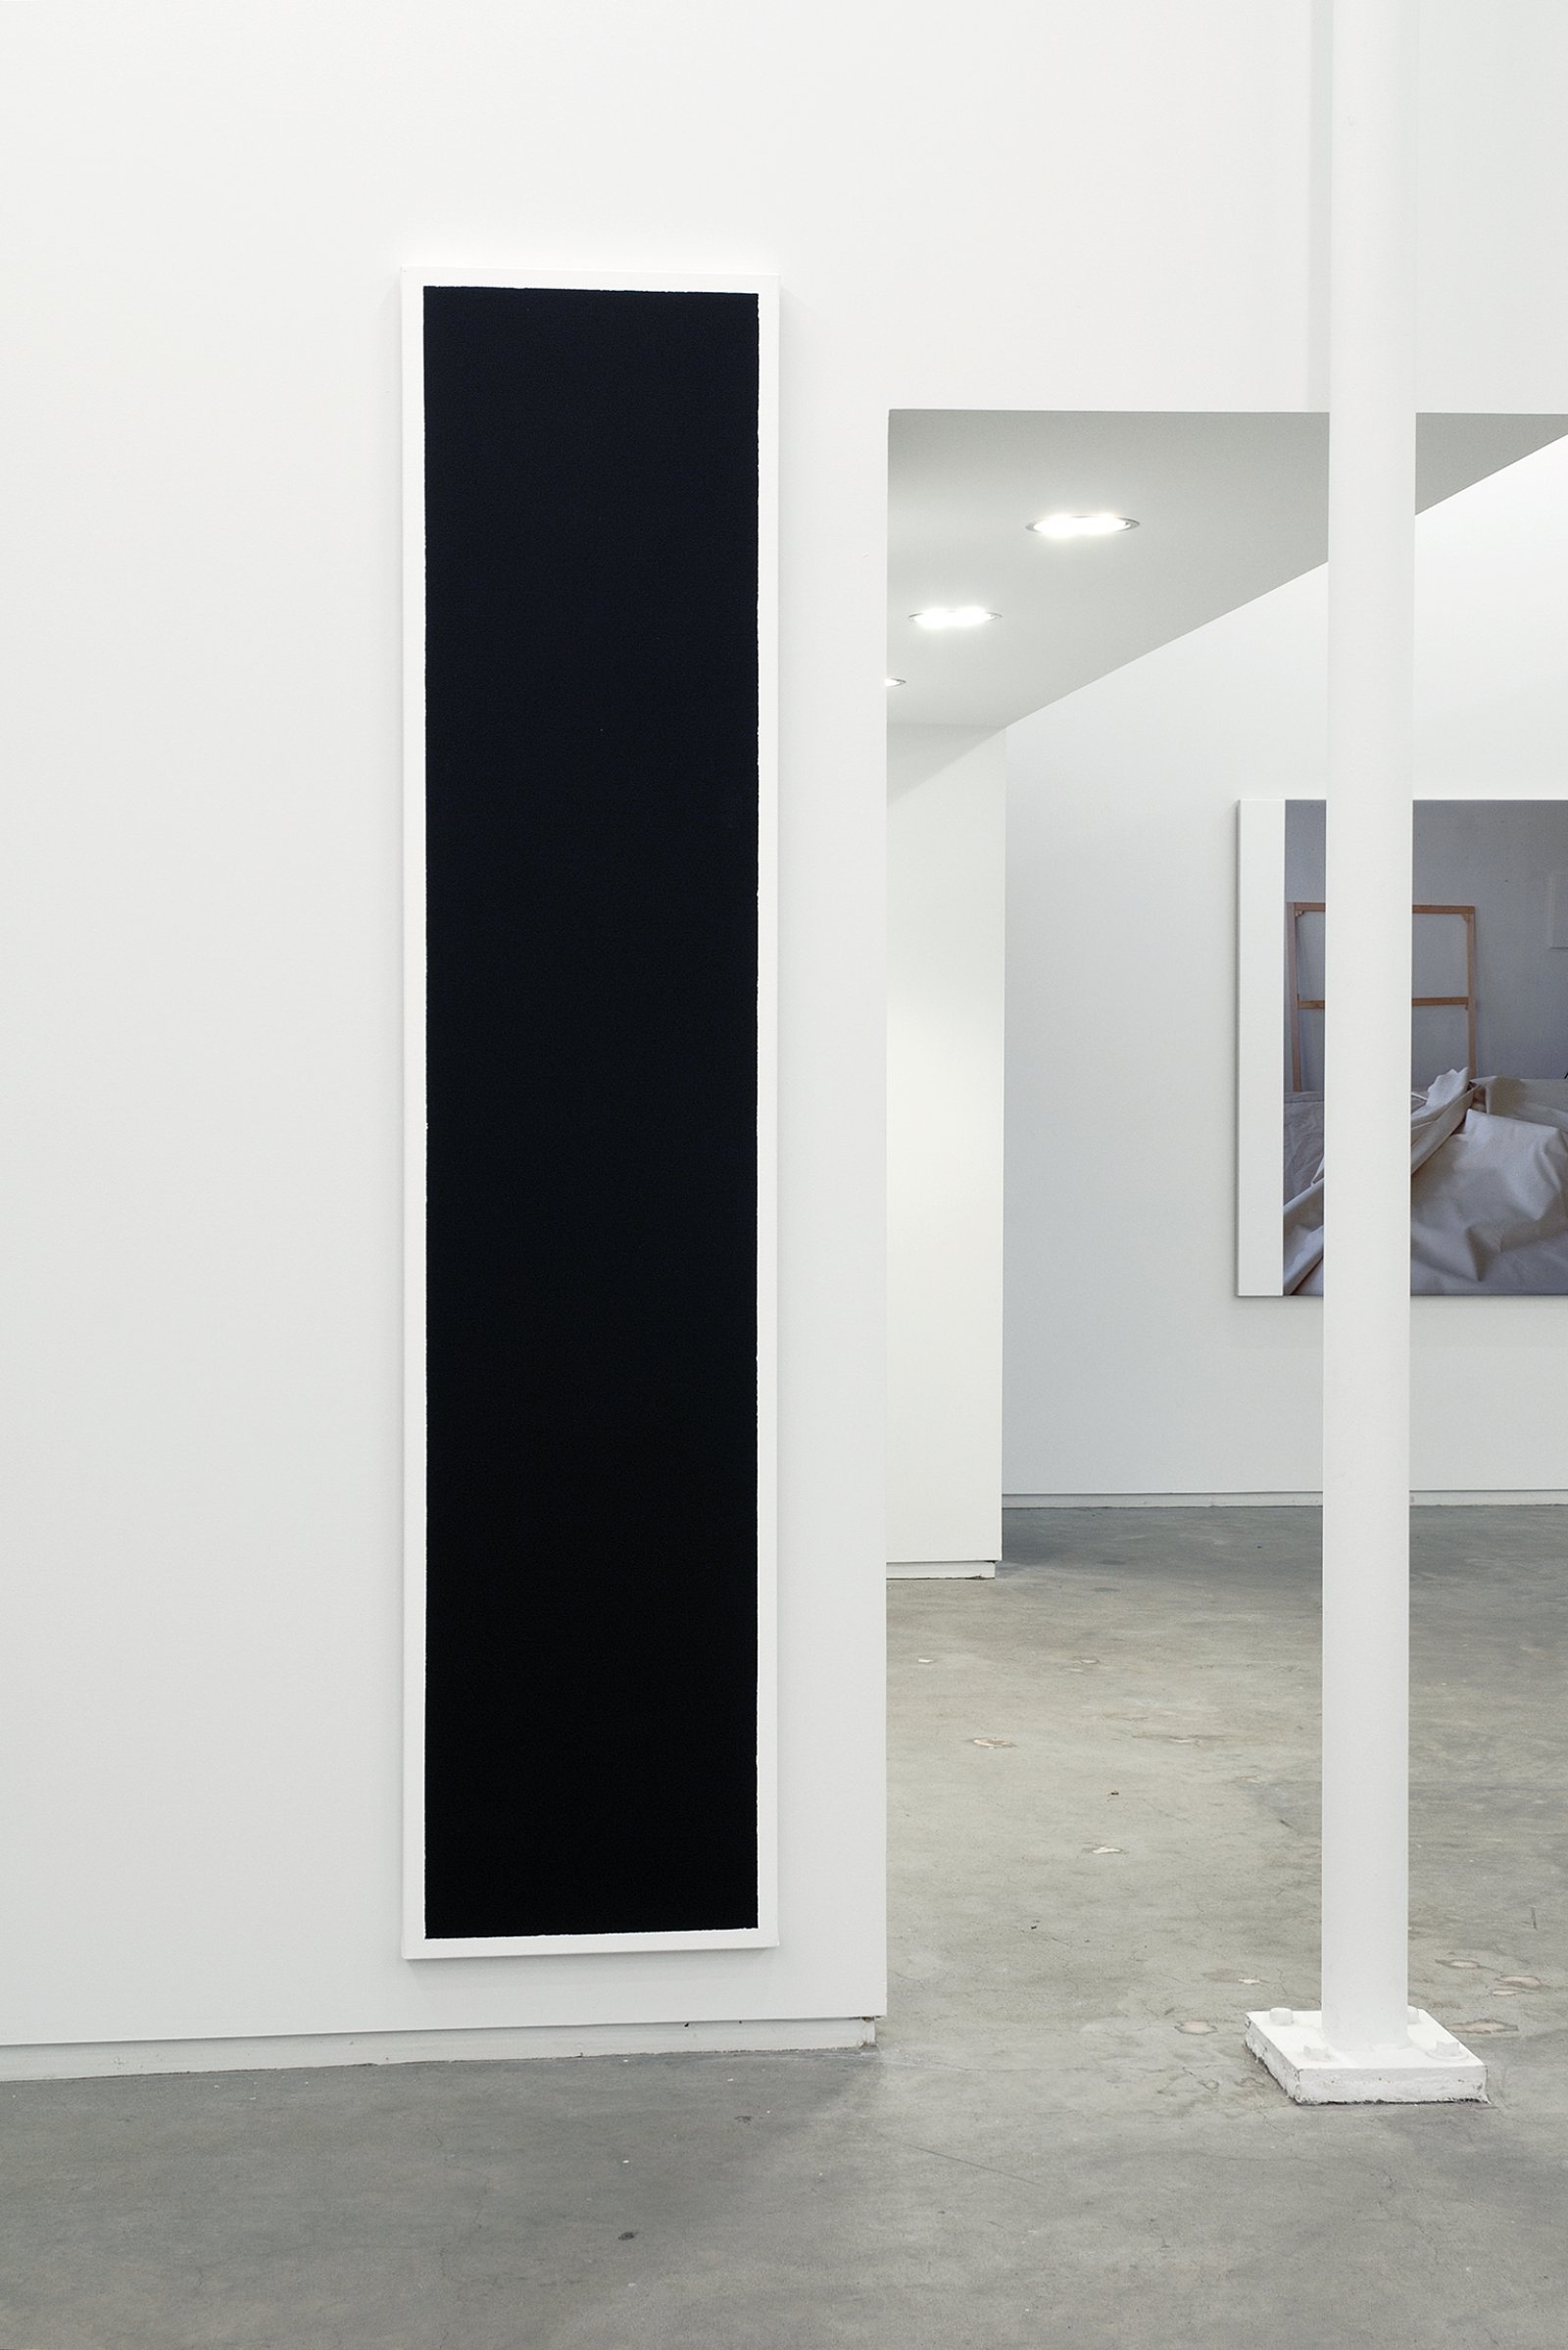 ​Ian Wallace, Untitled (Black Monochrome with White), 1967–2007, acrylic on canvas, 90 x 20 in. (229 x 51 cm)​​ by Ian Wallace